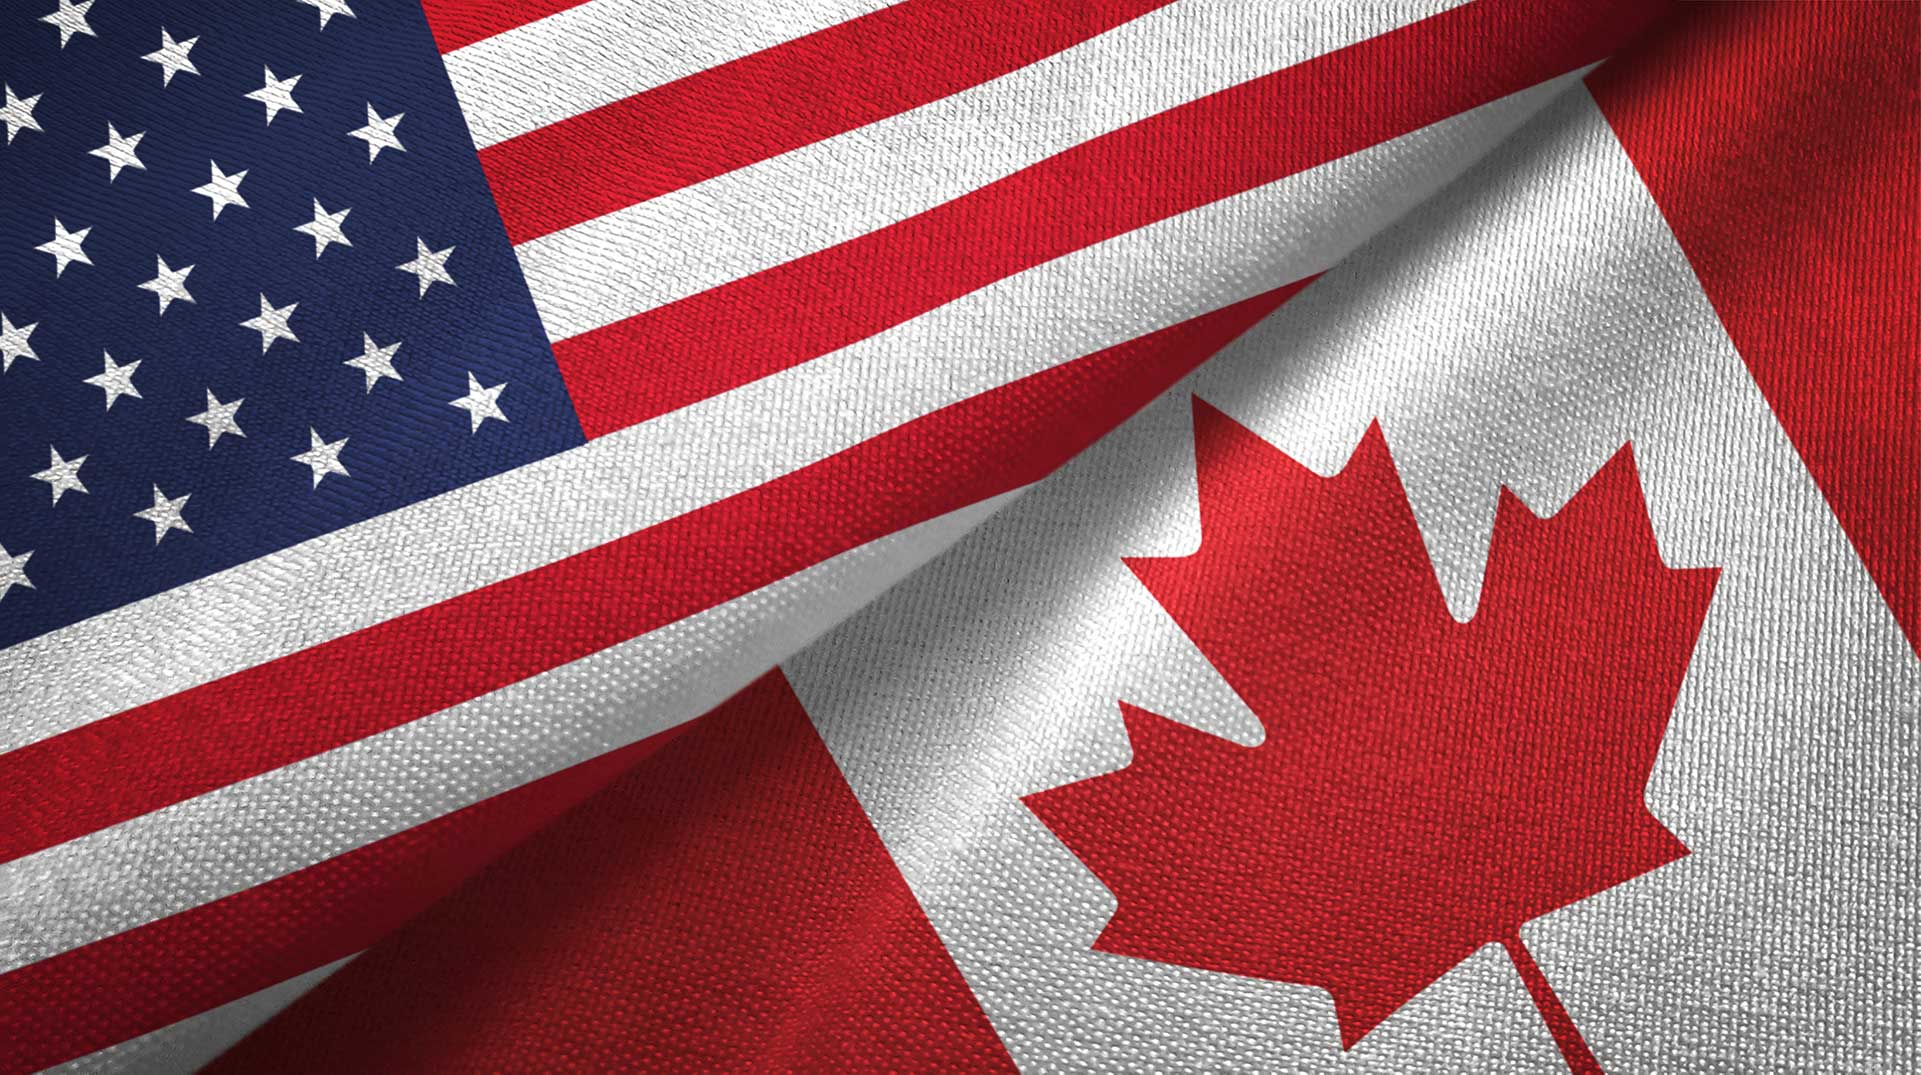 AtlasPROfilax USA & Canada - Find a practitioner near you